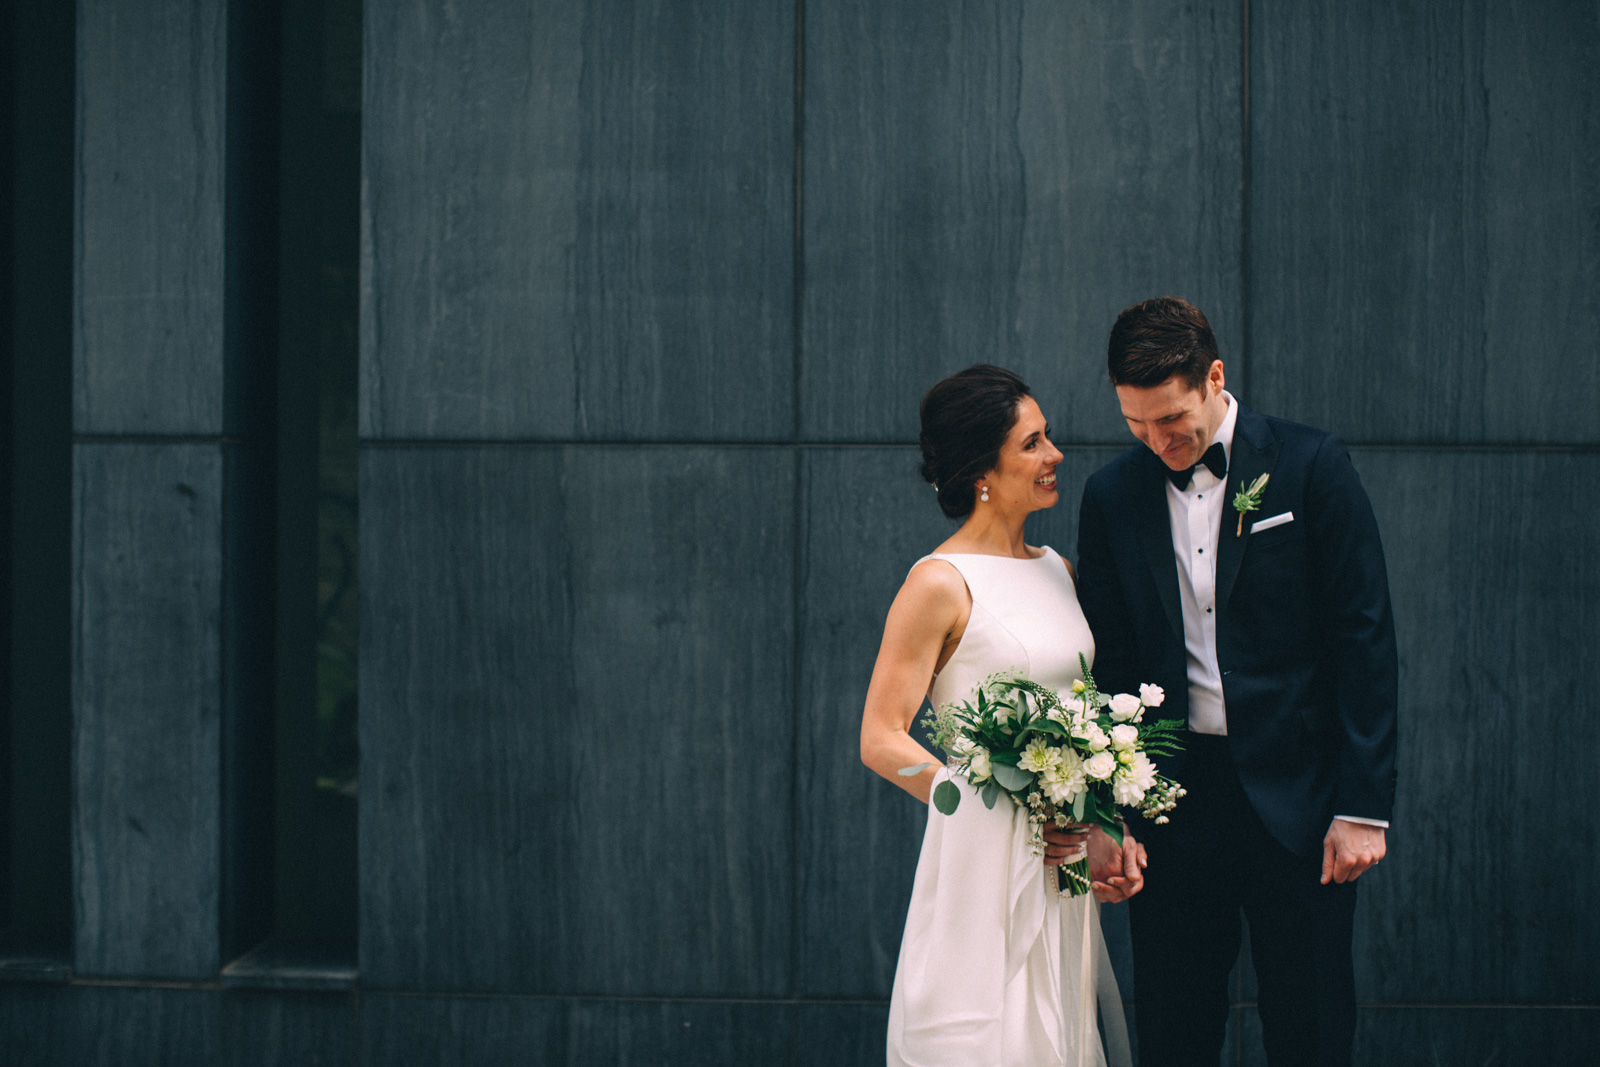 Malaparte-wedding-photography-Toronto-by-Sam-Wong-of-Artanis-Collective_33.jpg